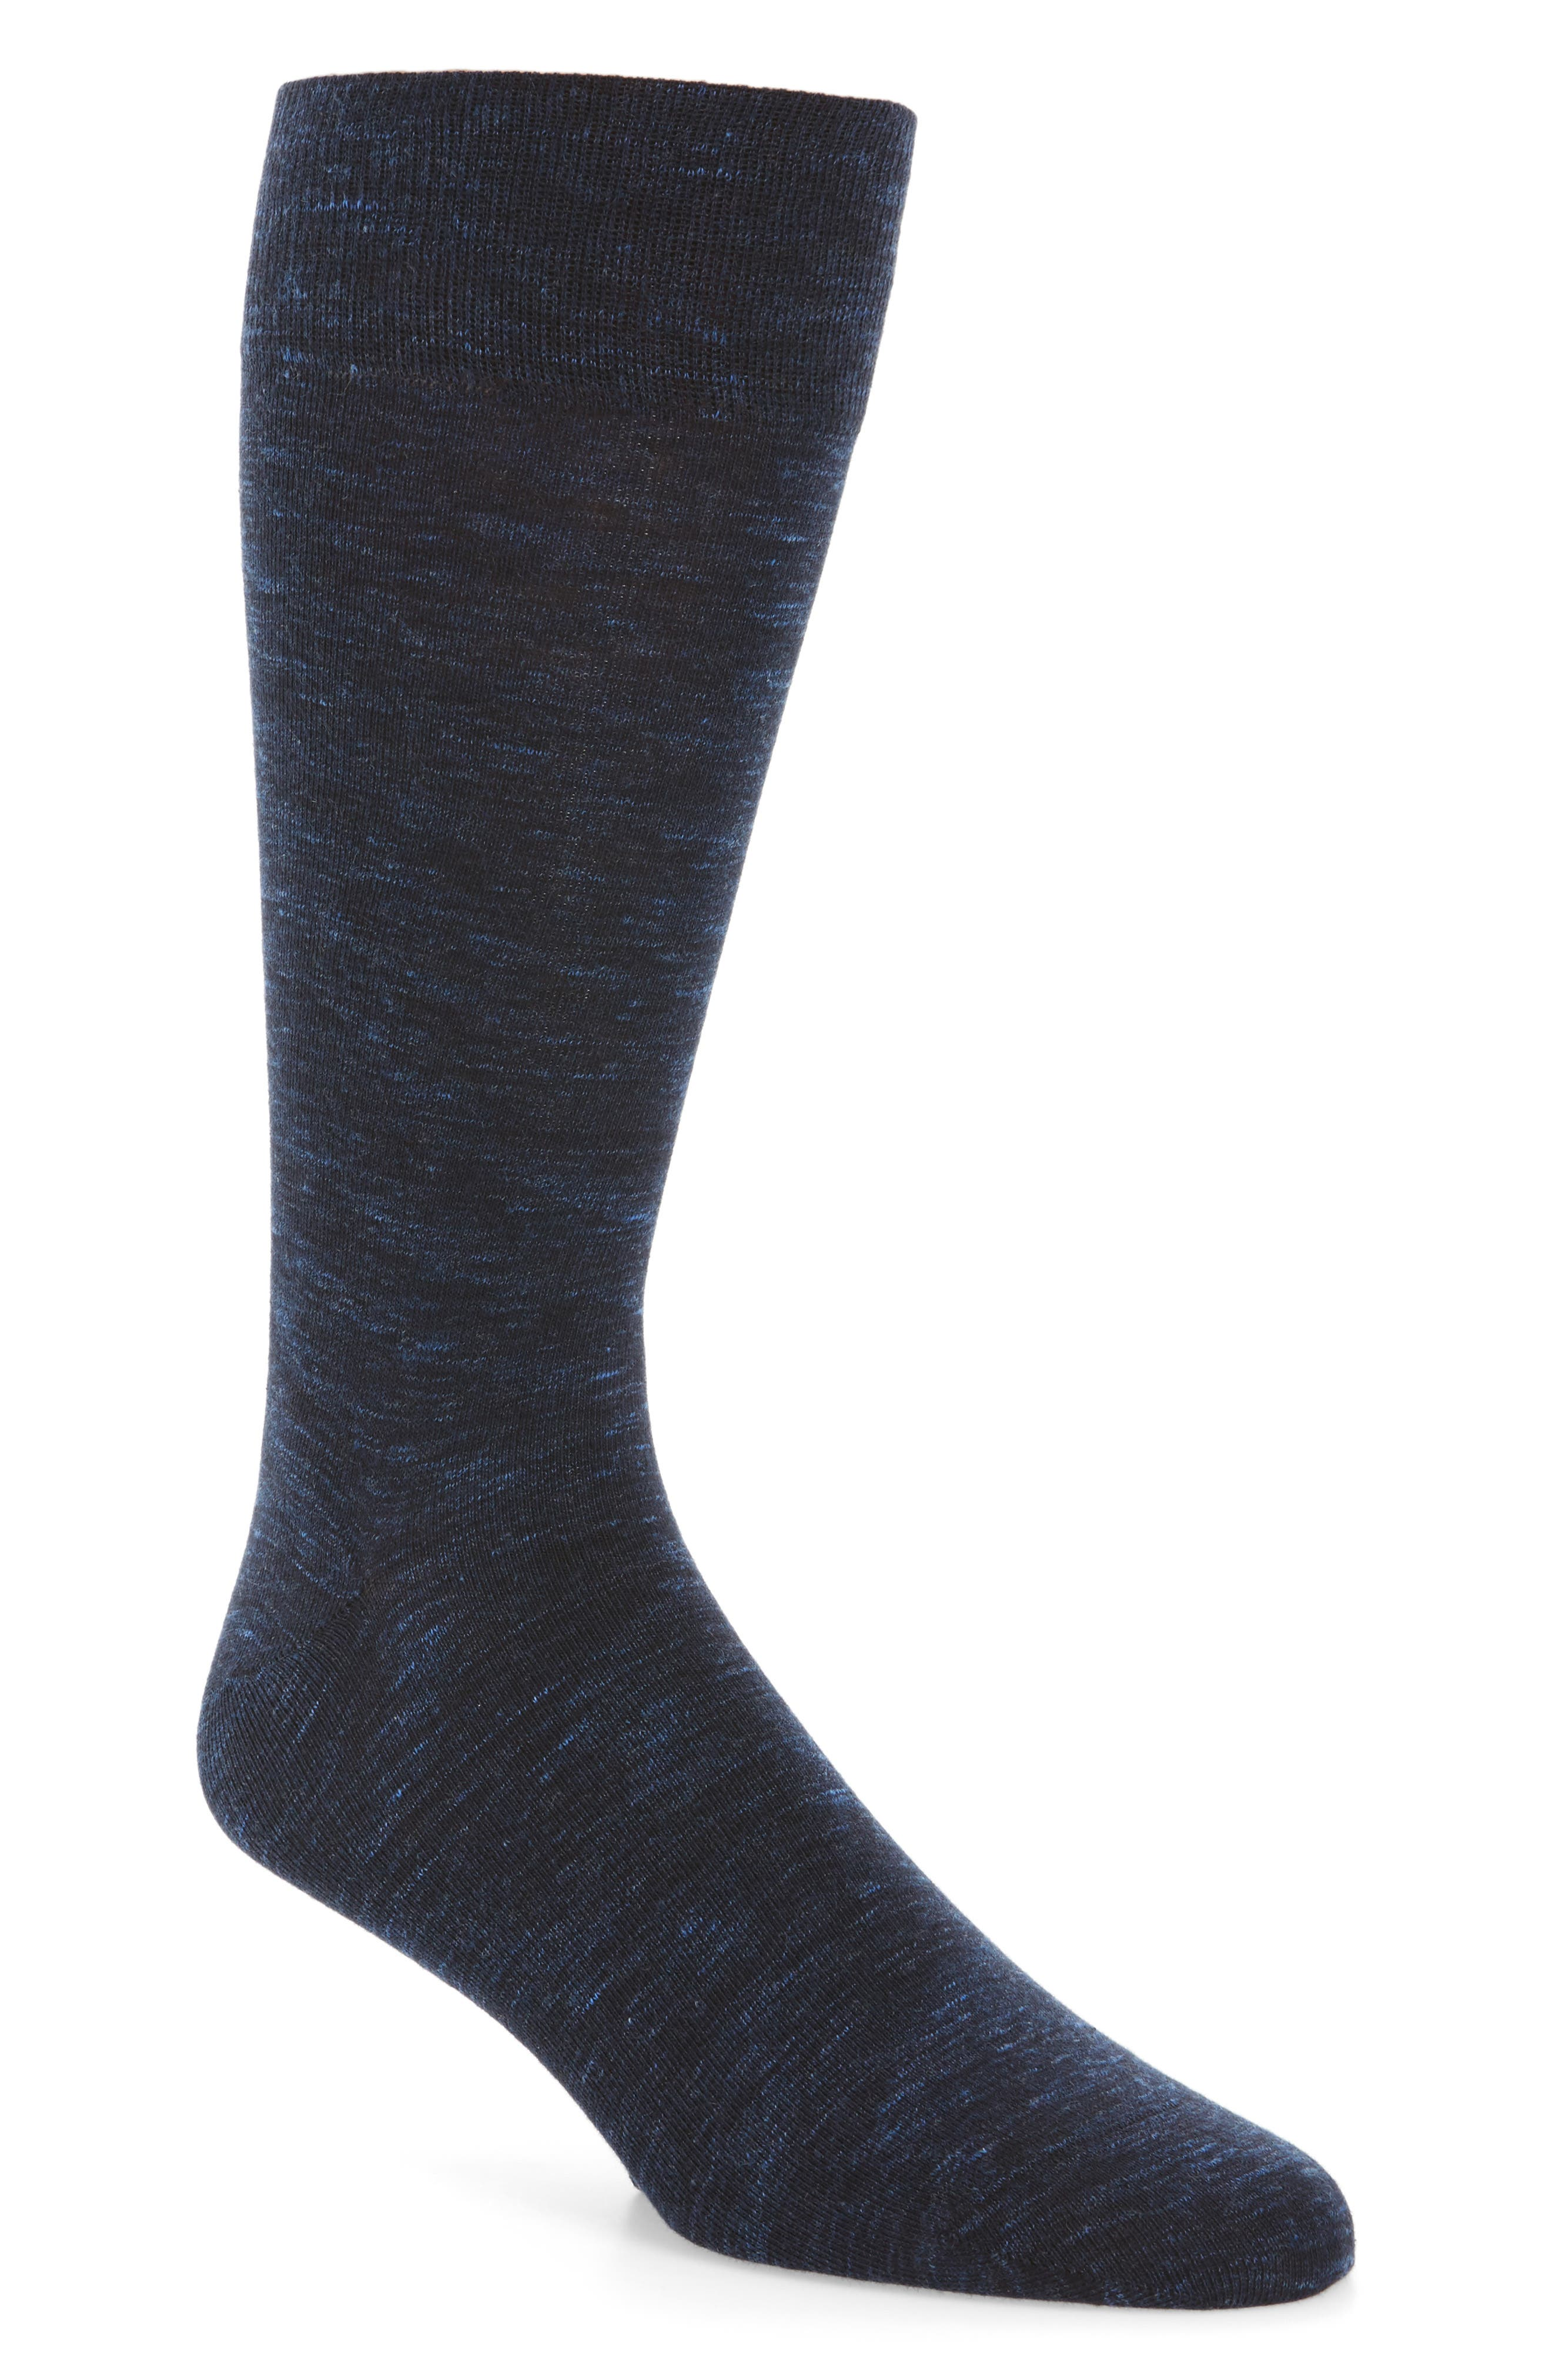 Main Image - Cole Haan Twist Socks (3 for $30)